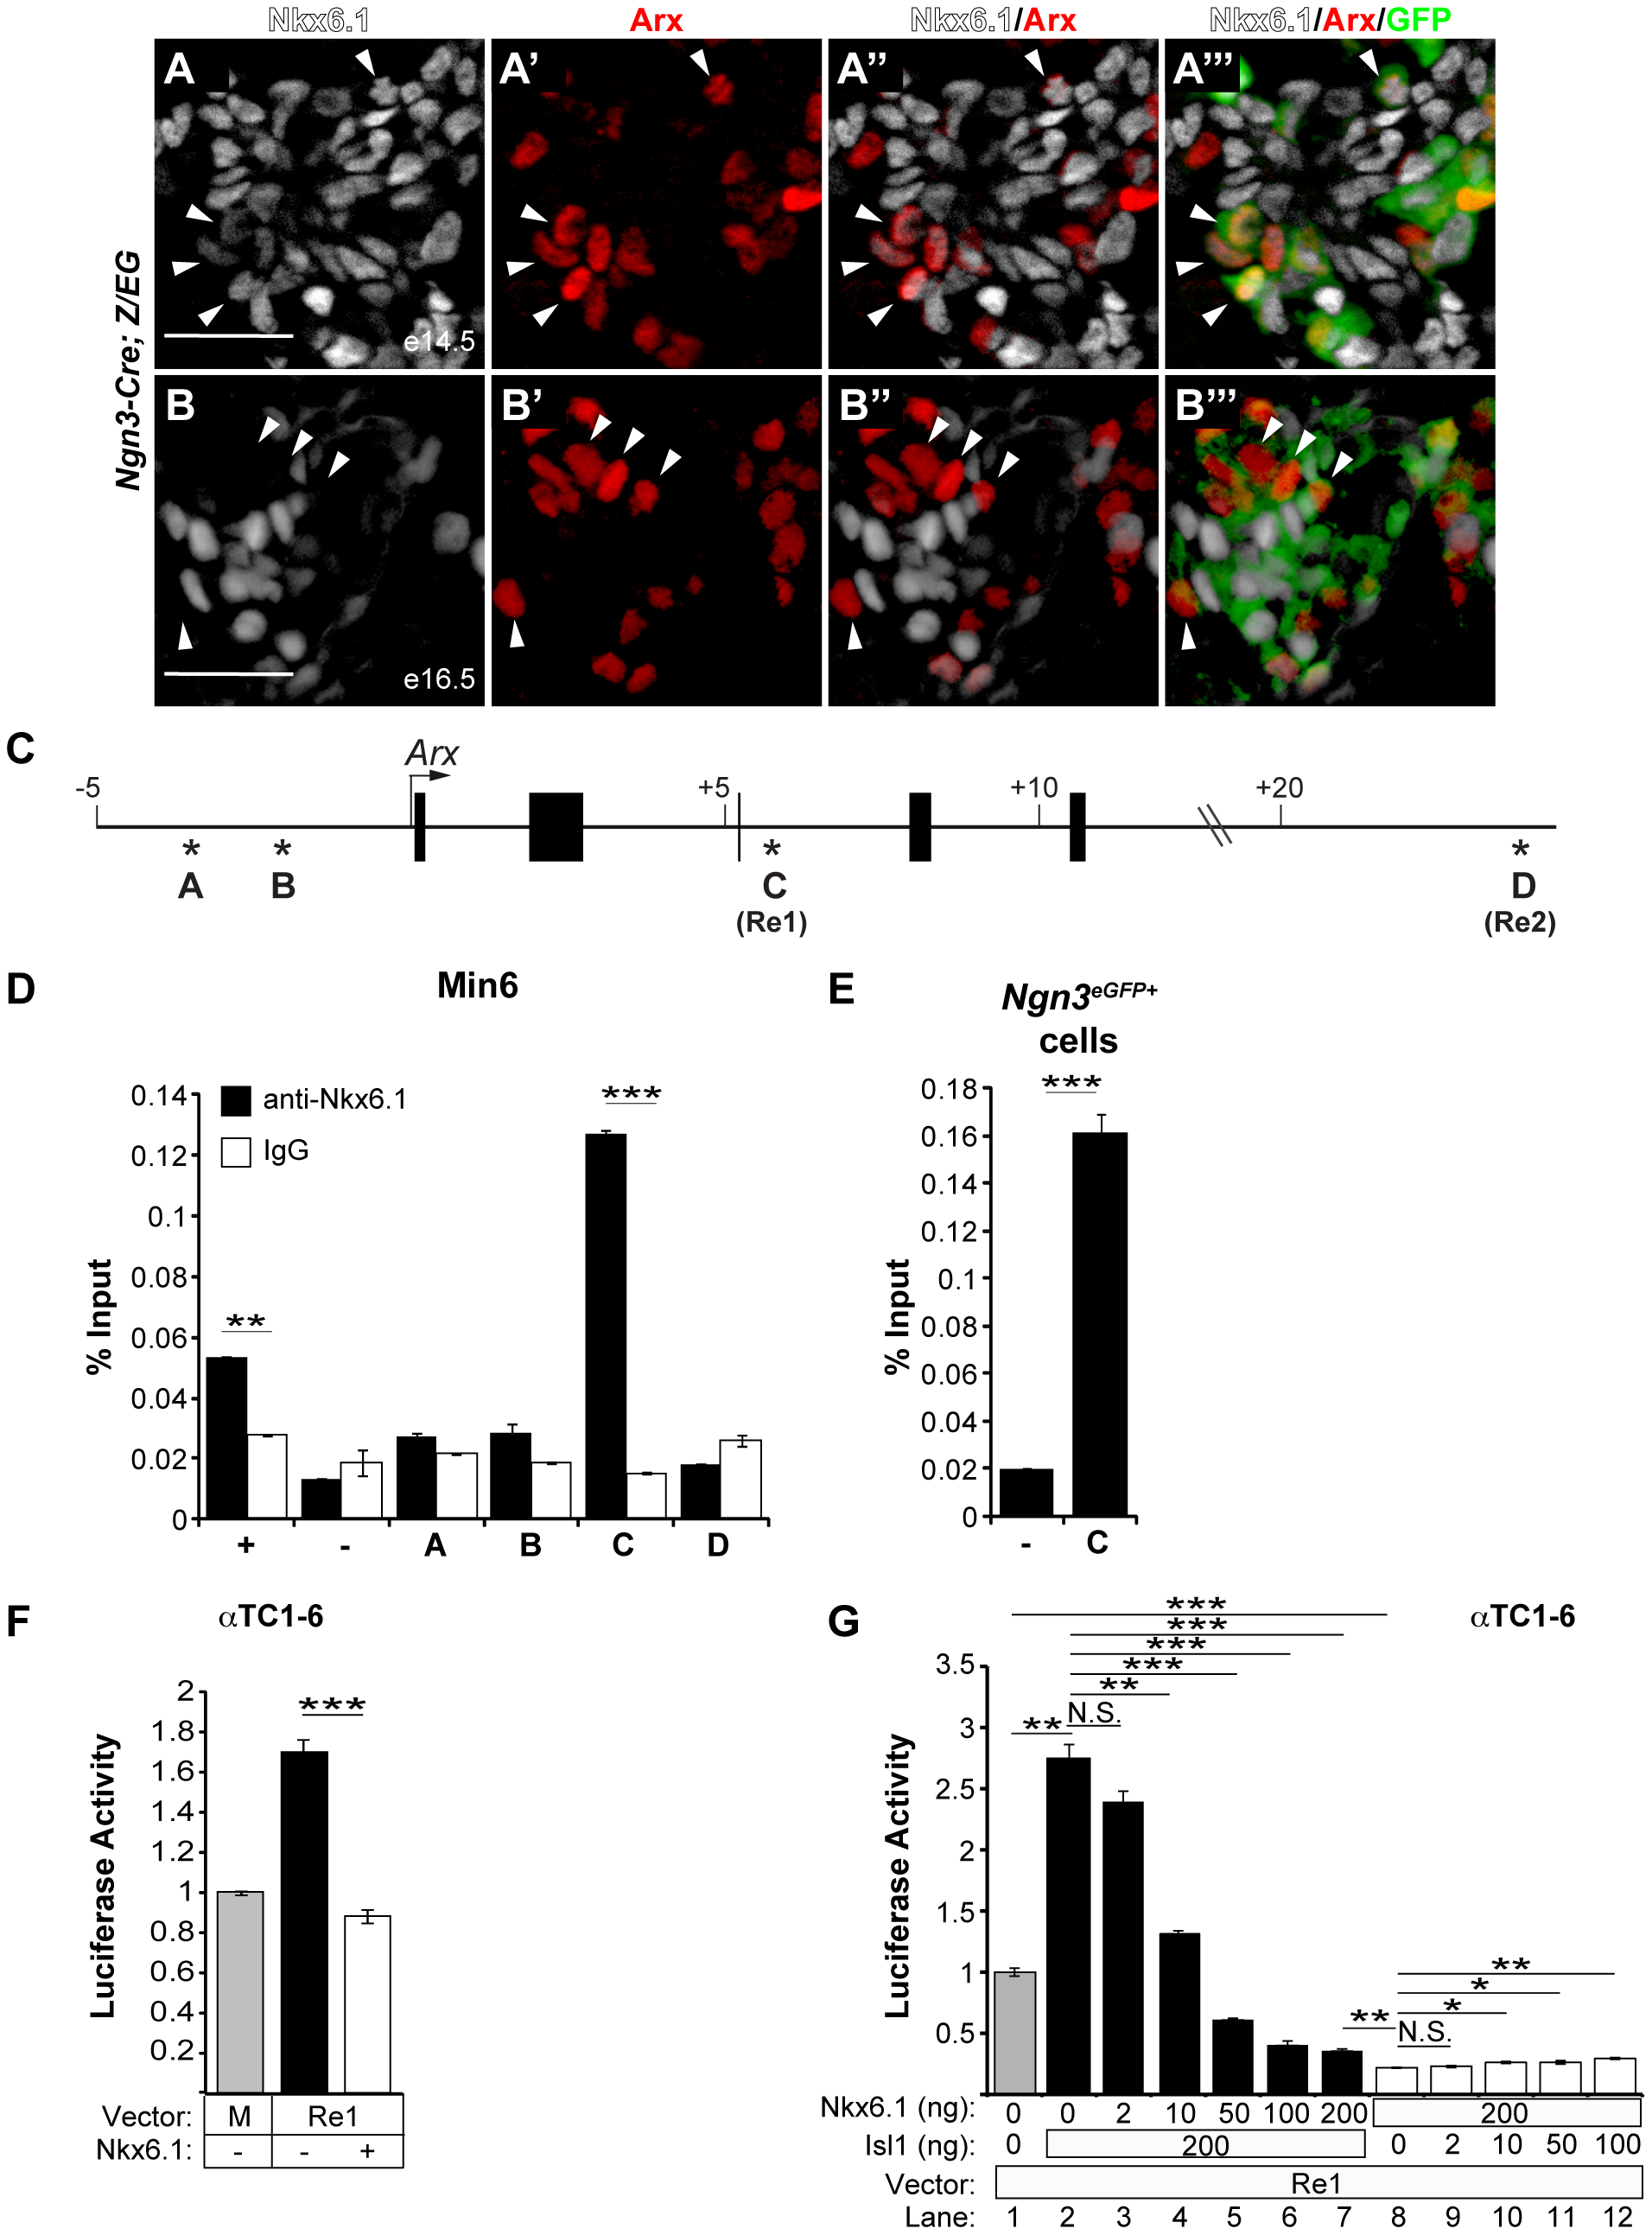 Nkx6.1 and Isl1 function as antagonistic transcriptional regulators of the <i>Arx Re1</i> enhancer.